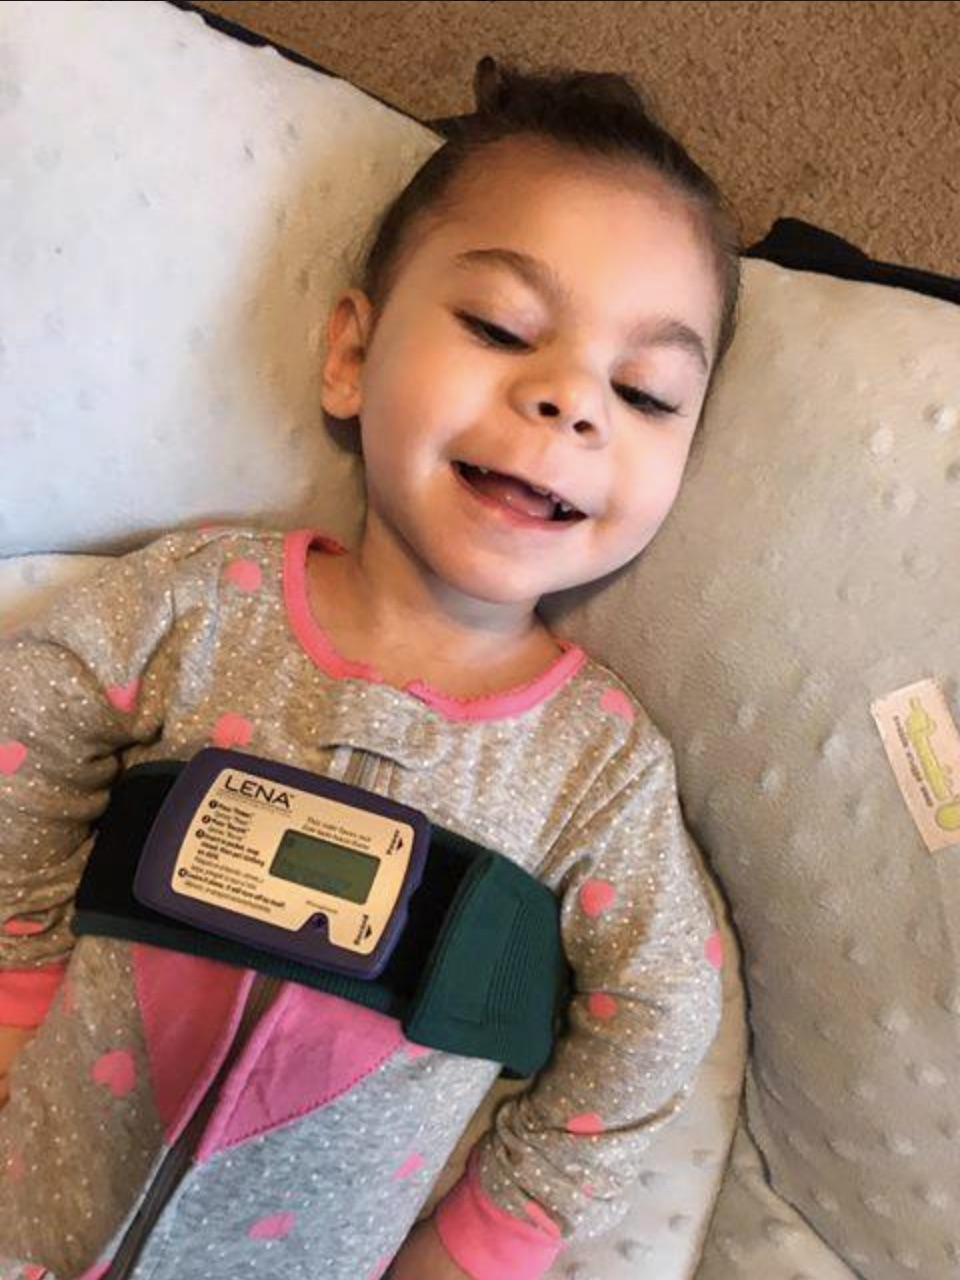 Makenna Loyd, wearing the LENA audio recording device.